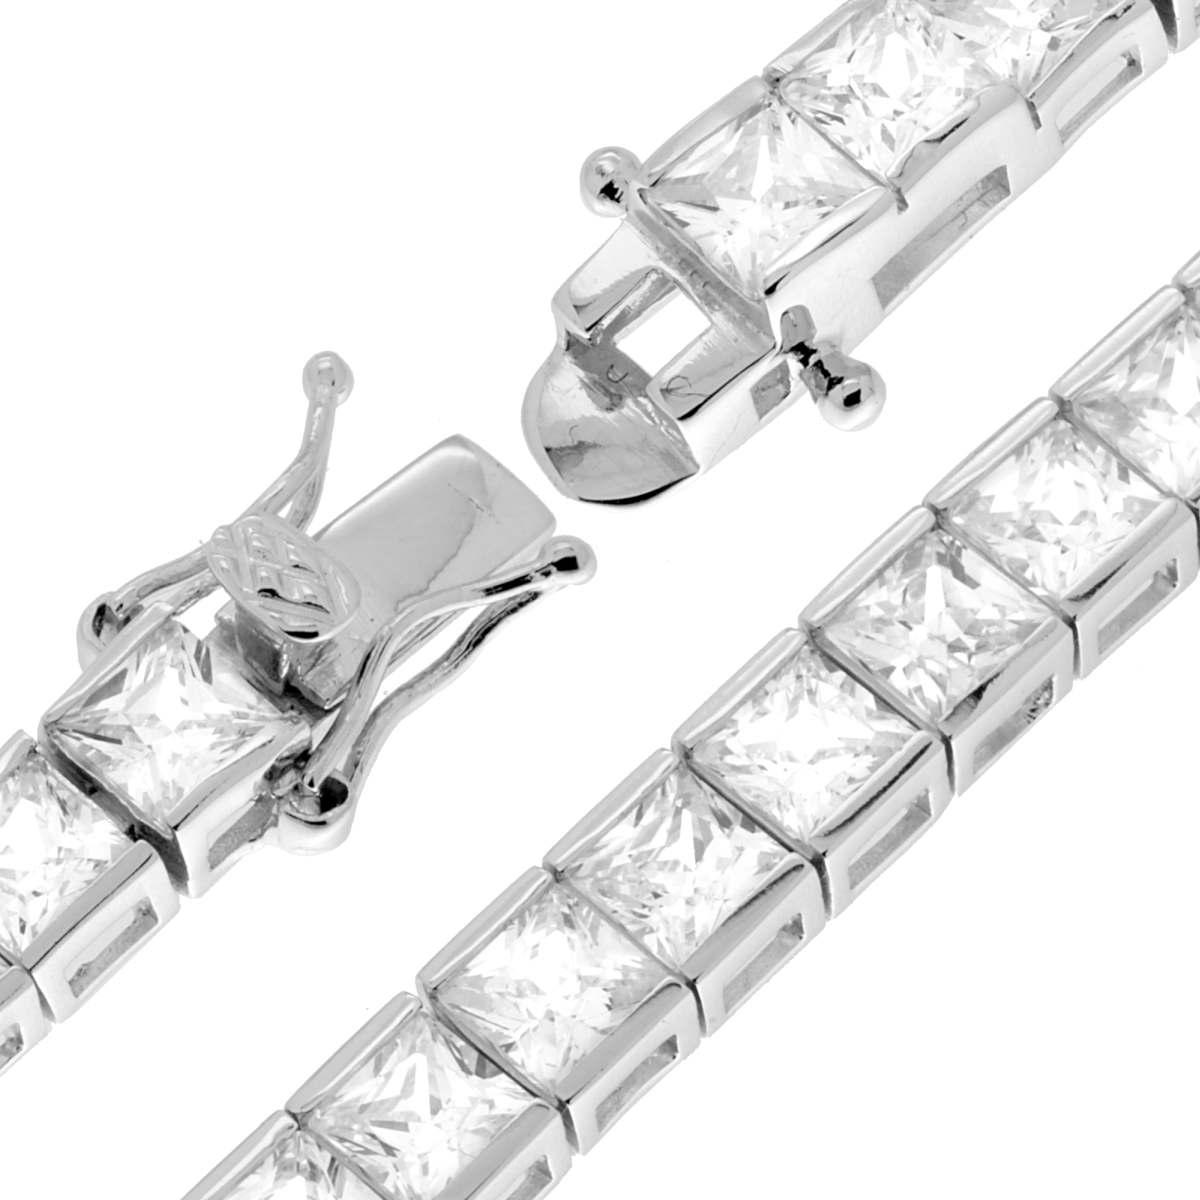 Bracciale Tennis Carrè con Zirconi 4 mm cm 21 in ARGENTO 925 Rodiato